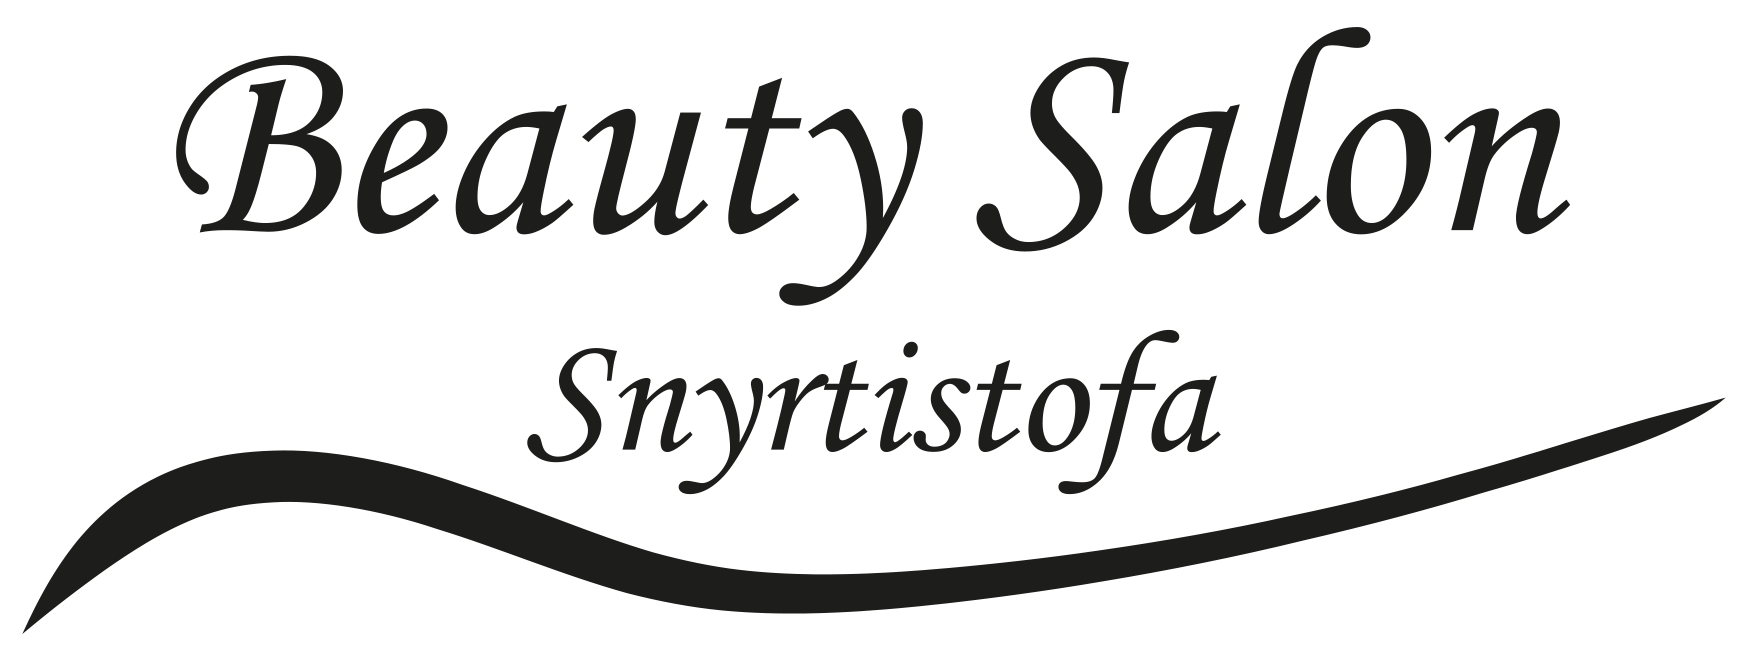 snyrtistofa